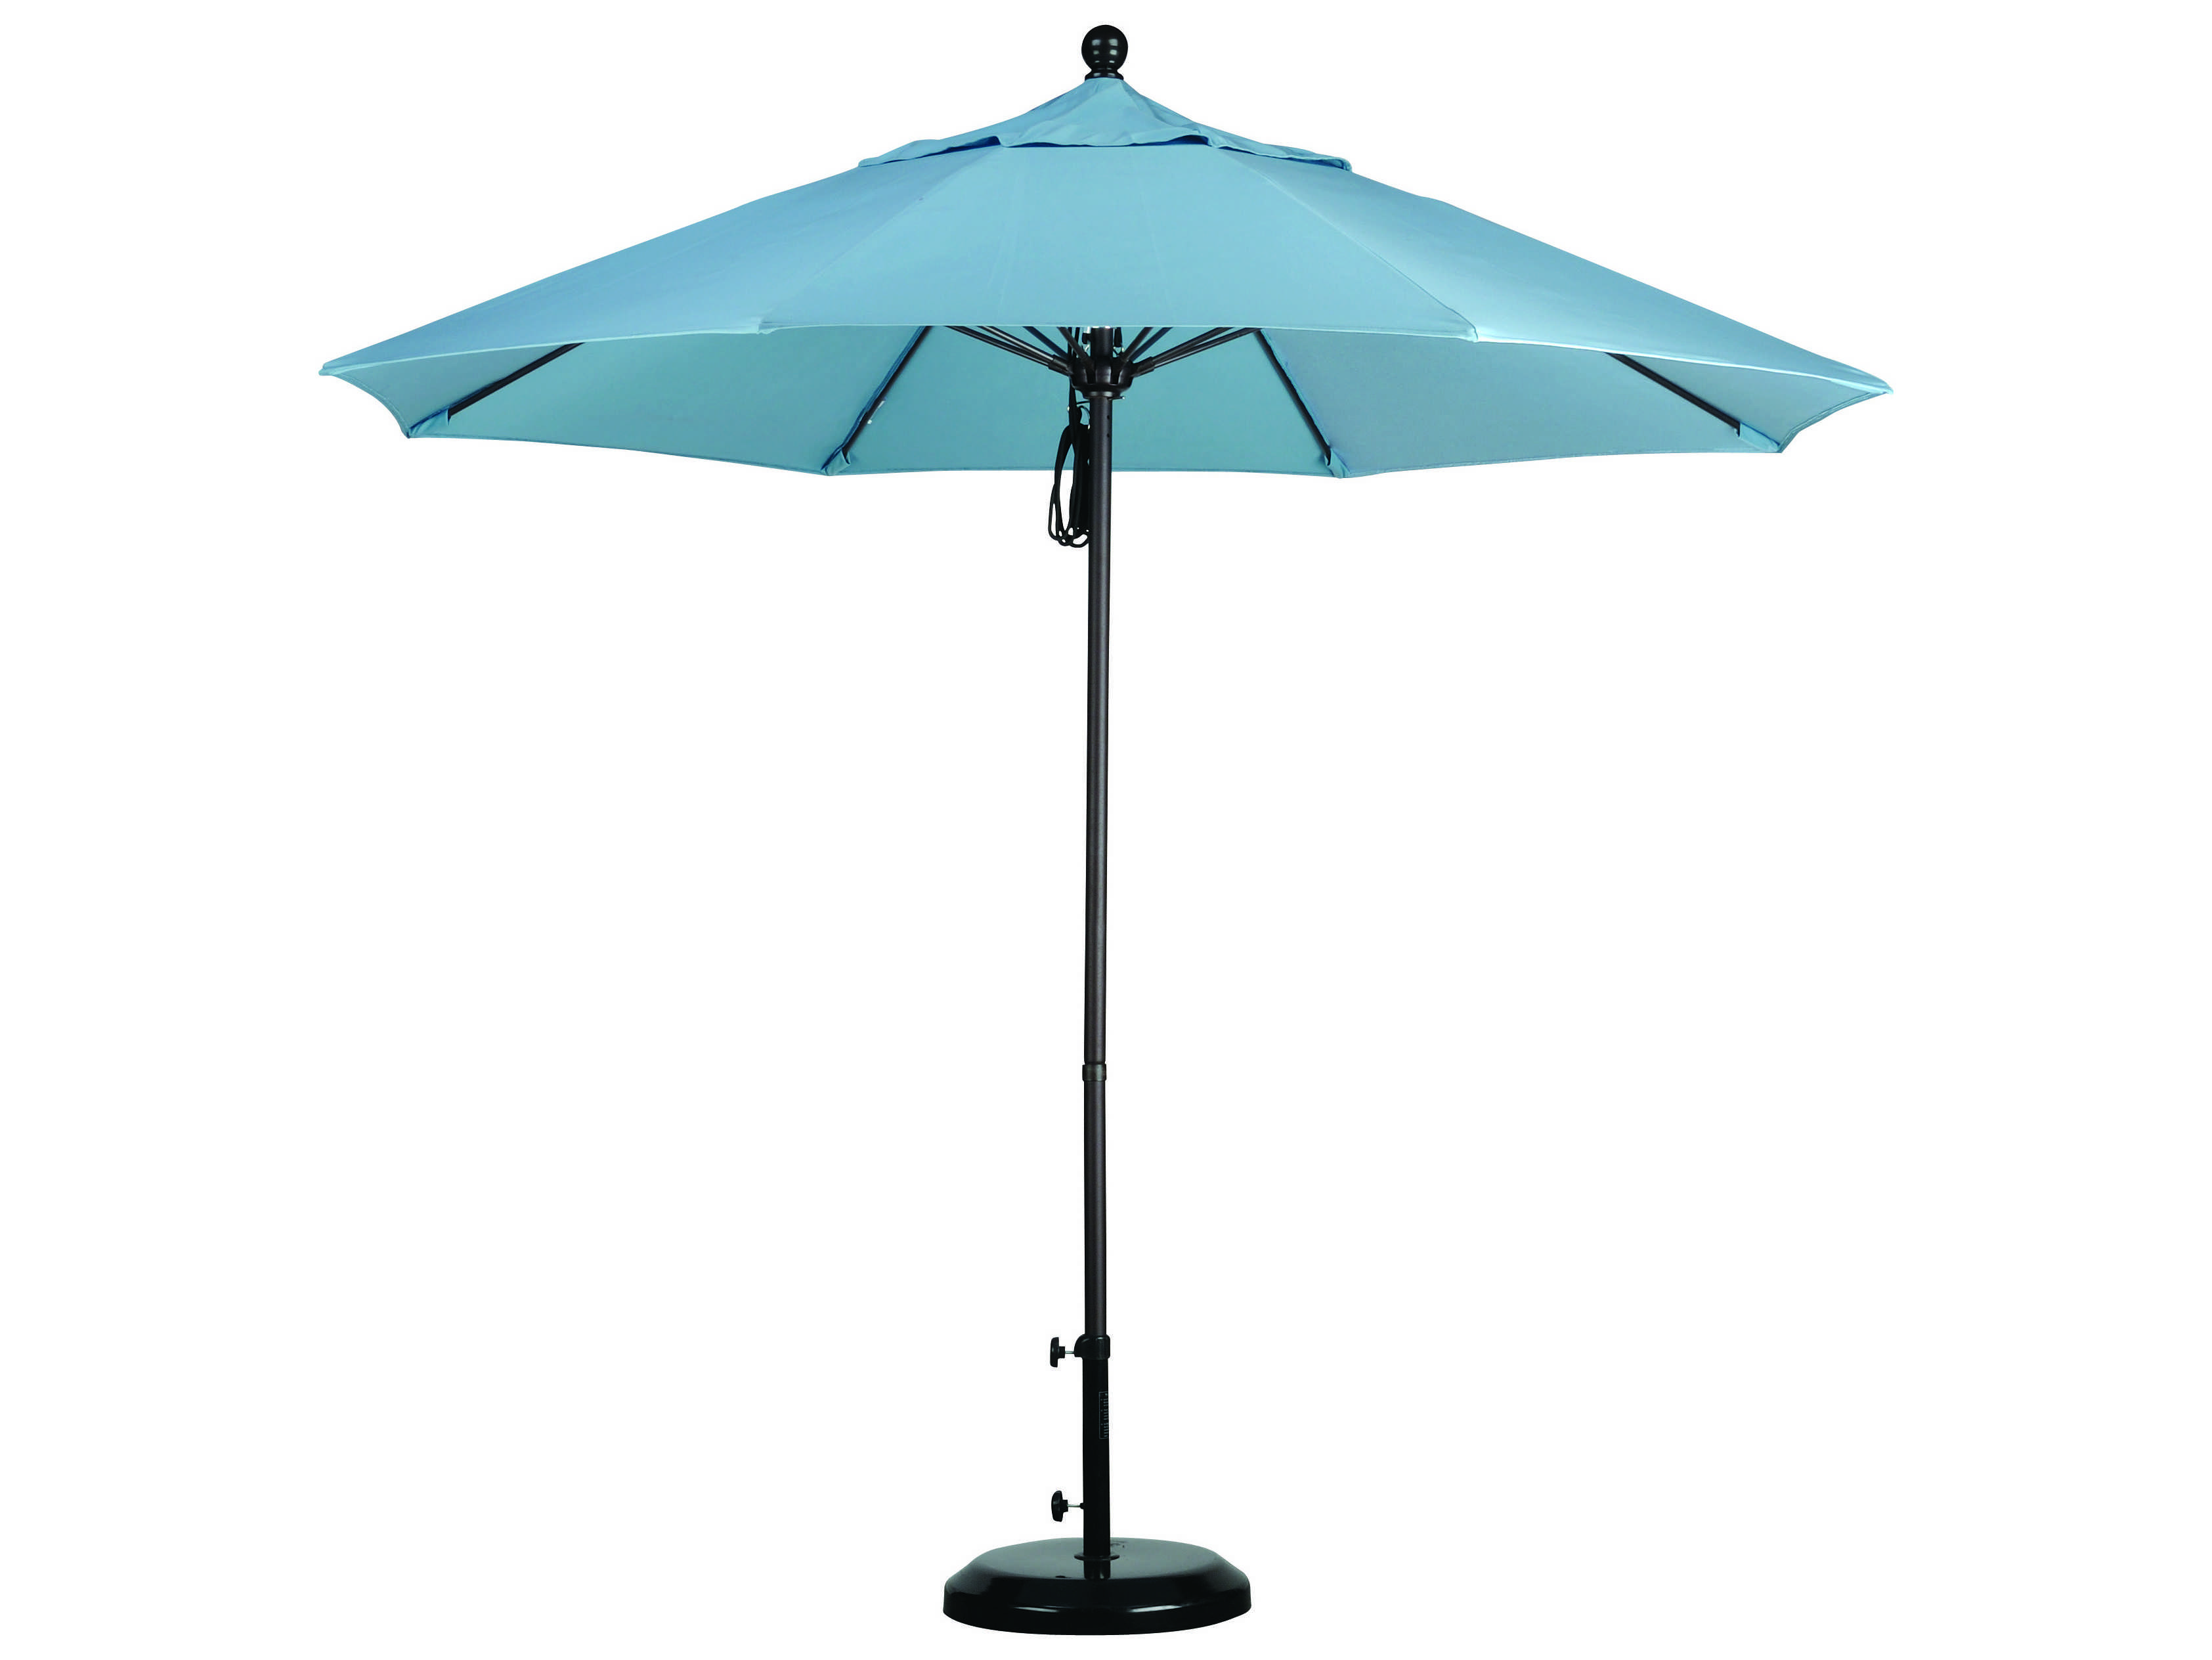 Caluco 9 Commercial Grade Umbrella With Sunbrella Canopy